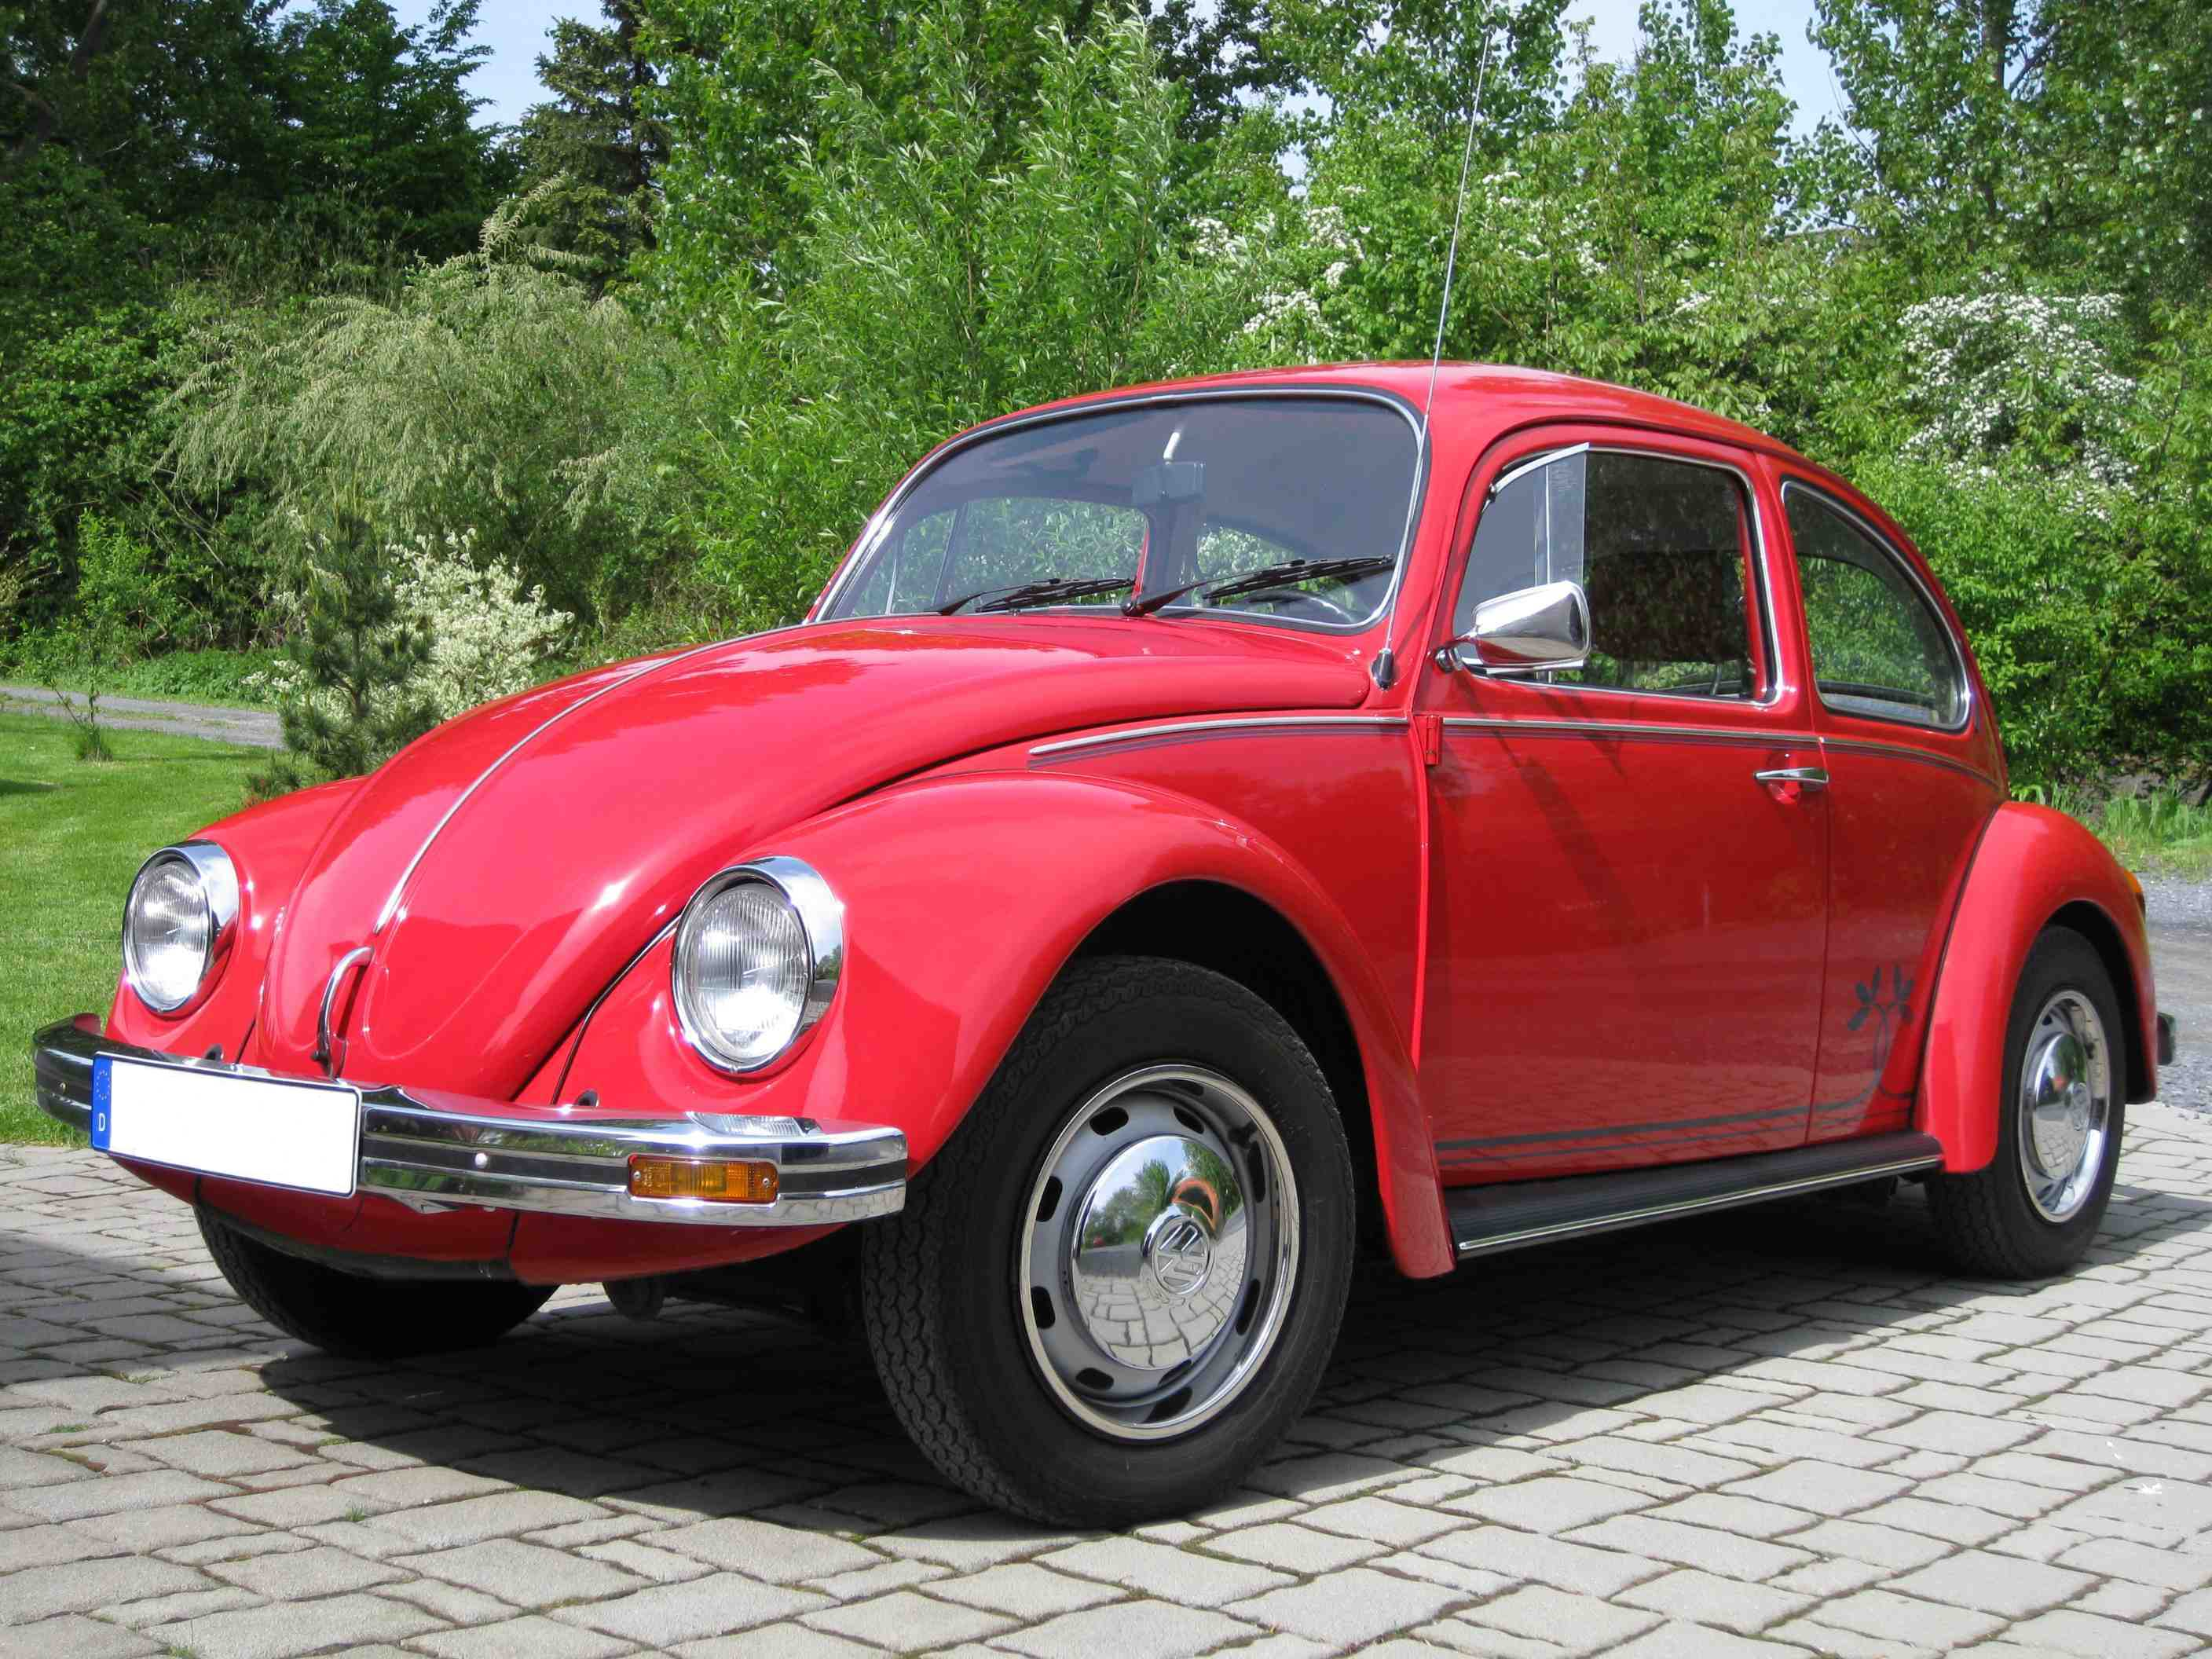 Samtroter77 bee orld as well RS T3 moreover Vendo volkswagen maggiolino custom 1984 firenze 211463 likewise 9630 Needs Matching Sparkplug Wires To The Correct Cylinder likewise Voiture collection. on 1984 vw cabrio